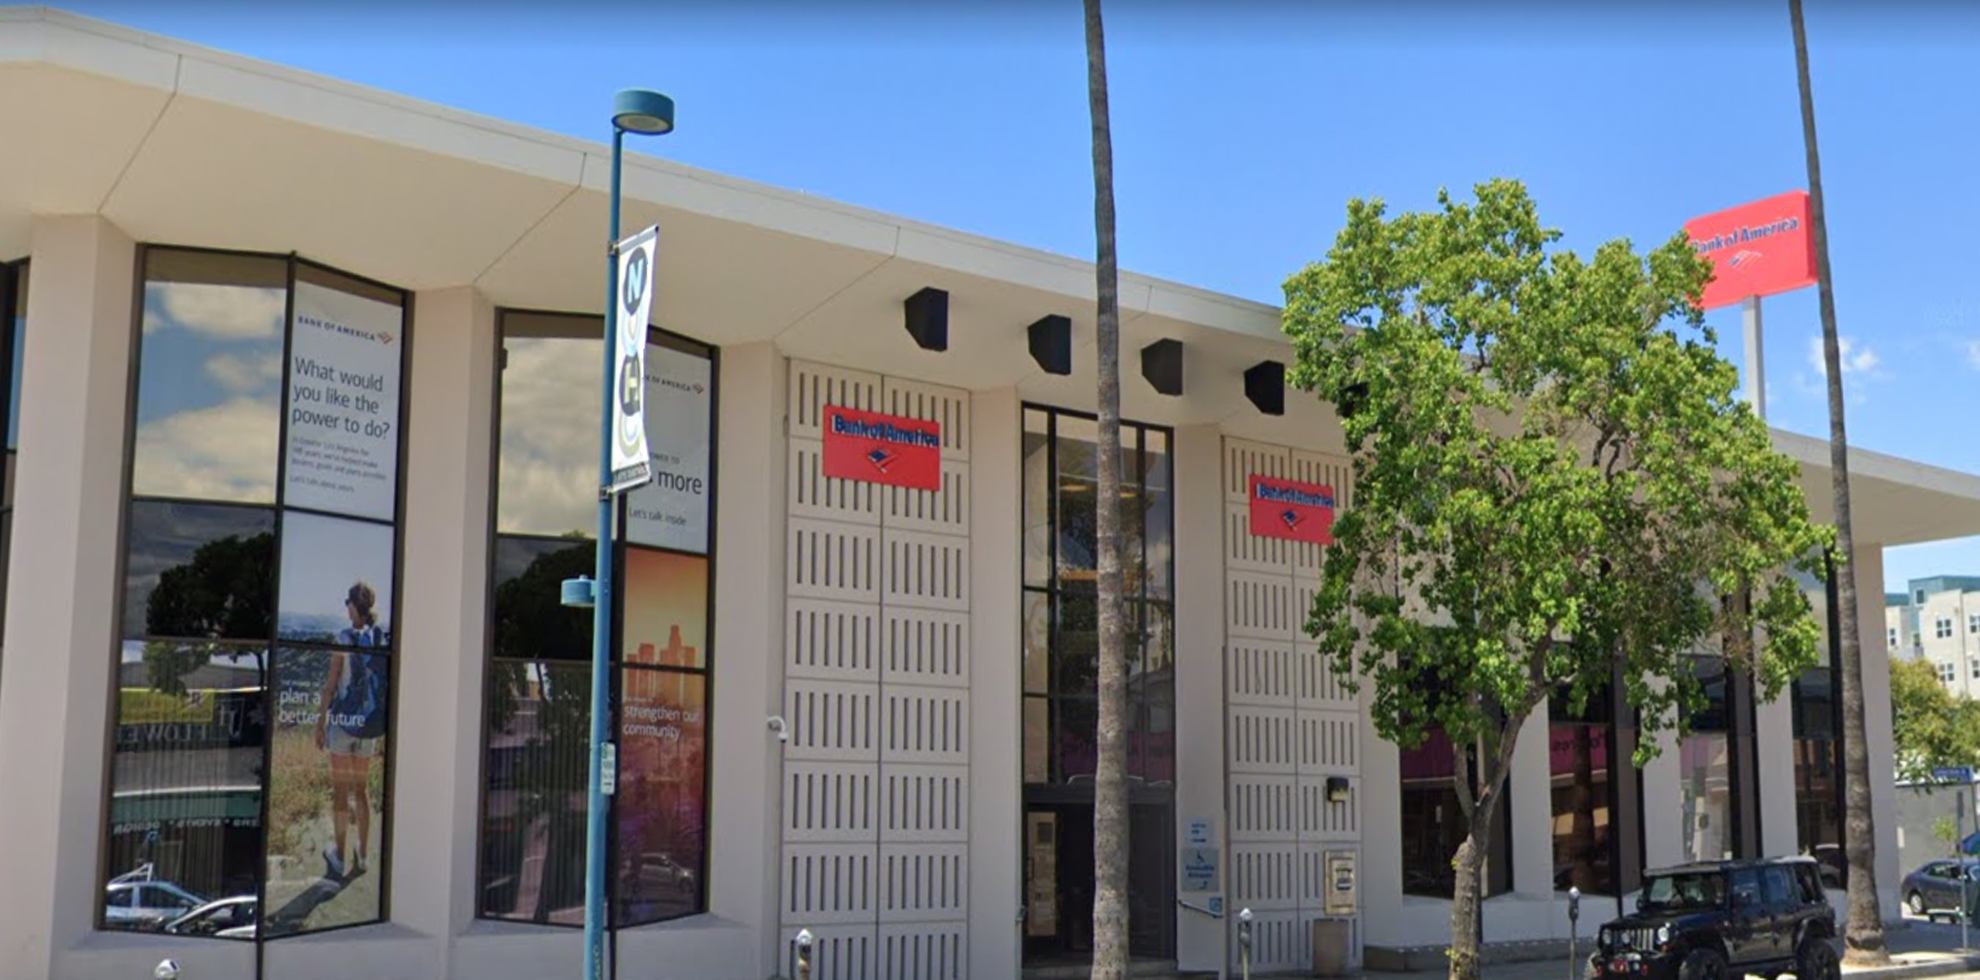 Bank of America financial center with drive-thru ATM | 5025 Lankershim Blvd, North Hollywood, CA 91601